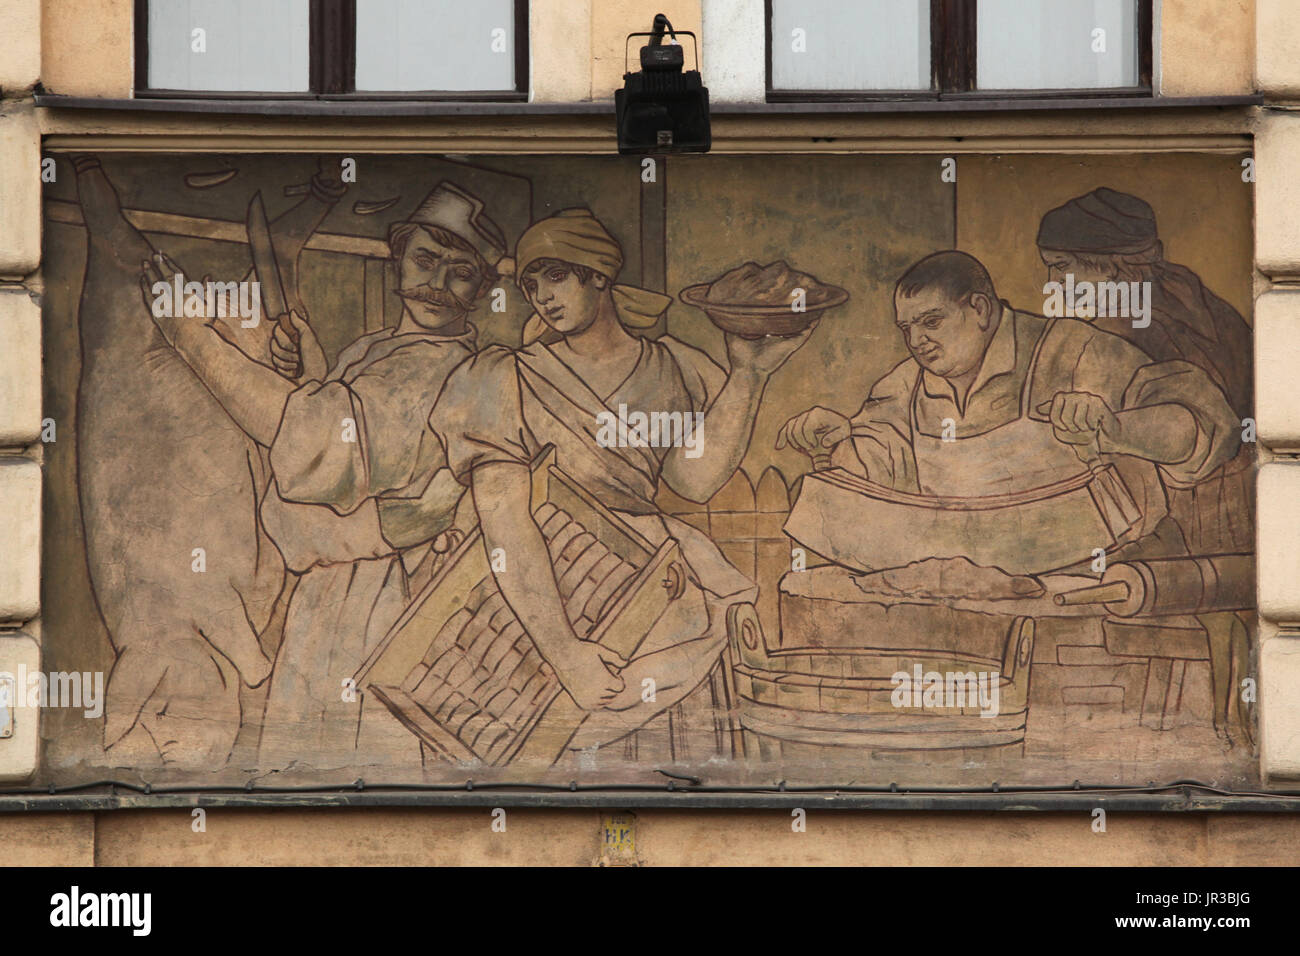 Pig slaughter depicted in the mural painting by Czech painter Ladislav Novák devoted to the Prague Butchers Guild on the dwelling house designed by Czech architect Jan Zeyer in Argentinská Street in Holešovice district in Prague, Czech Republic. - Stock Image